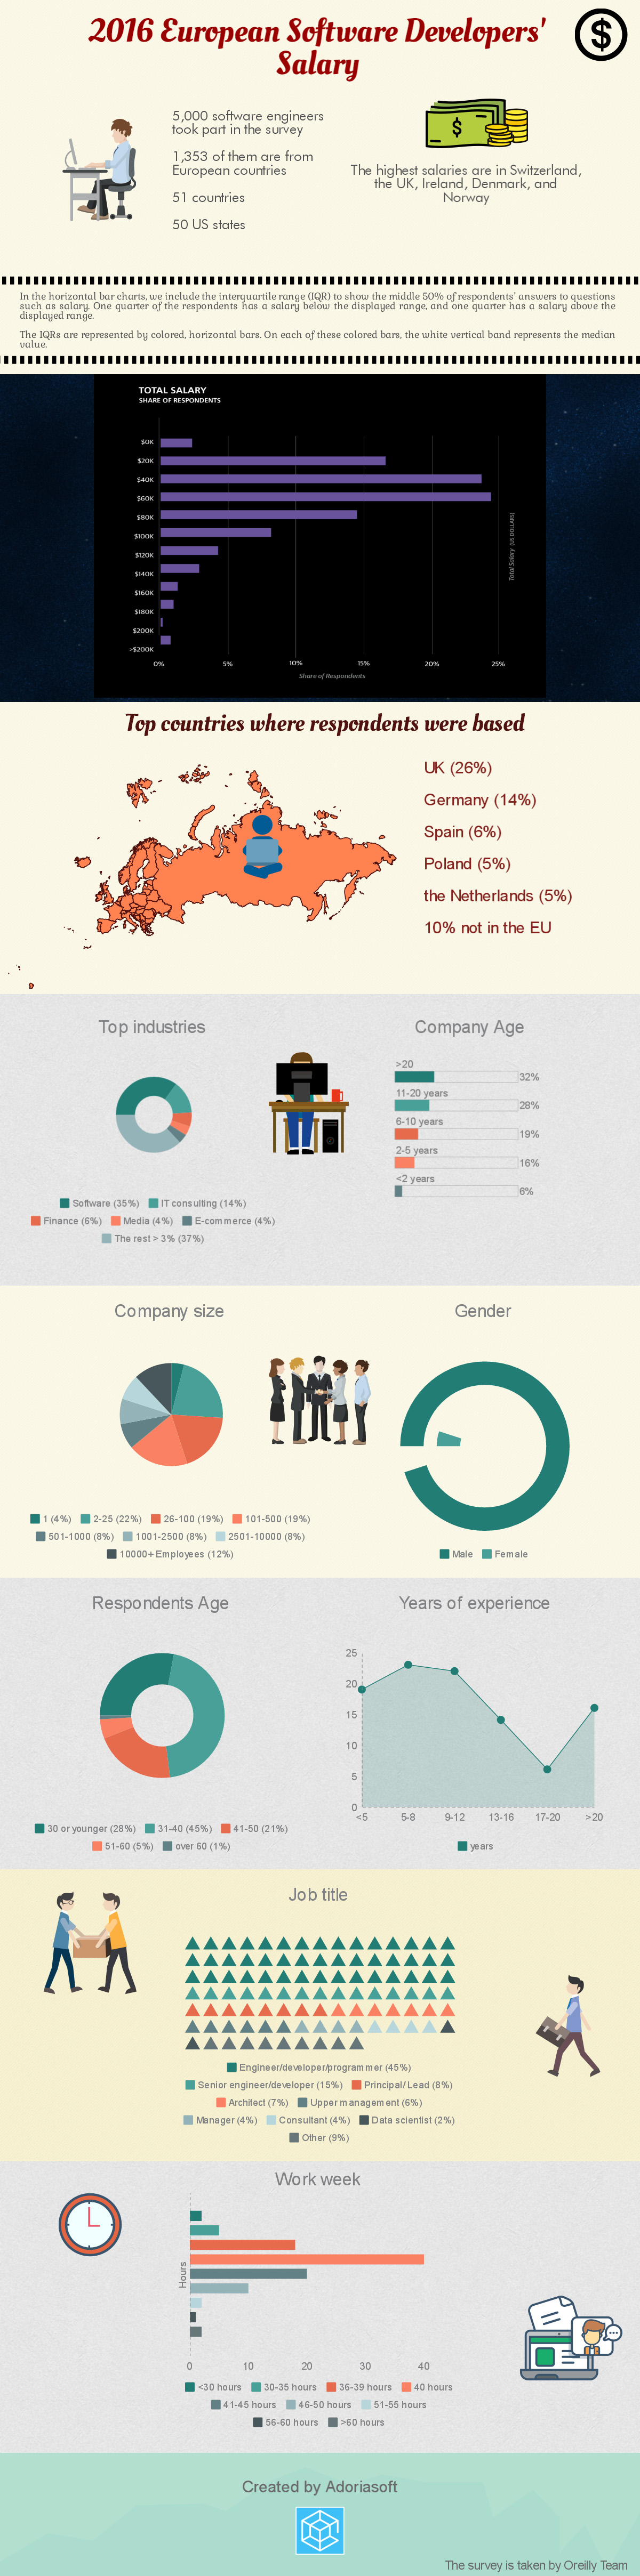 European Software Developers' Salary [Infographic]